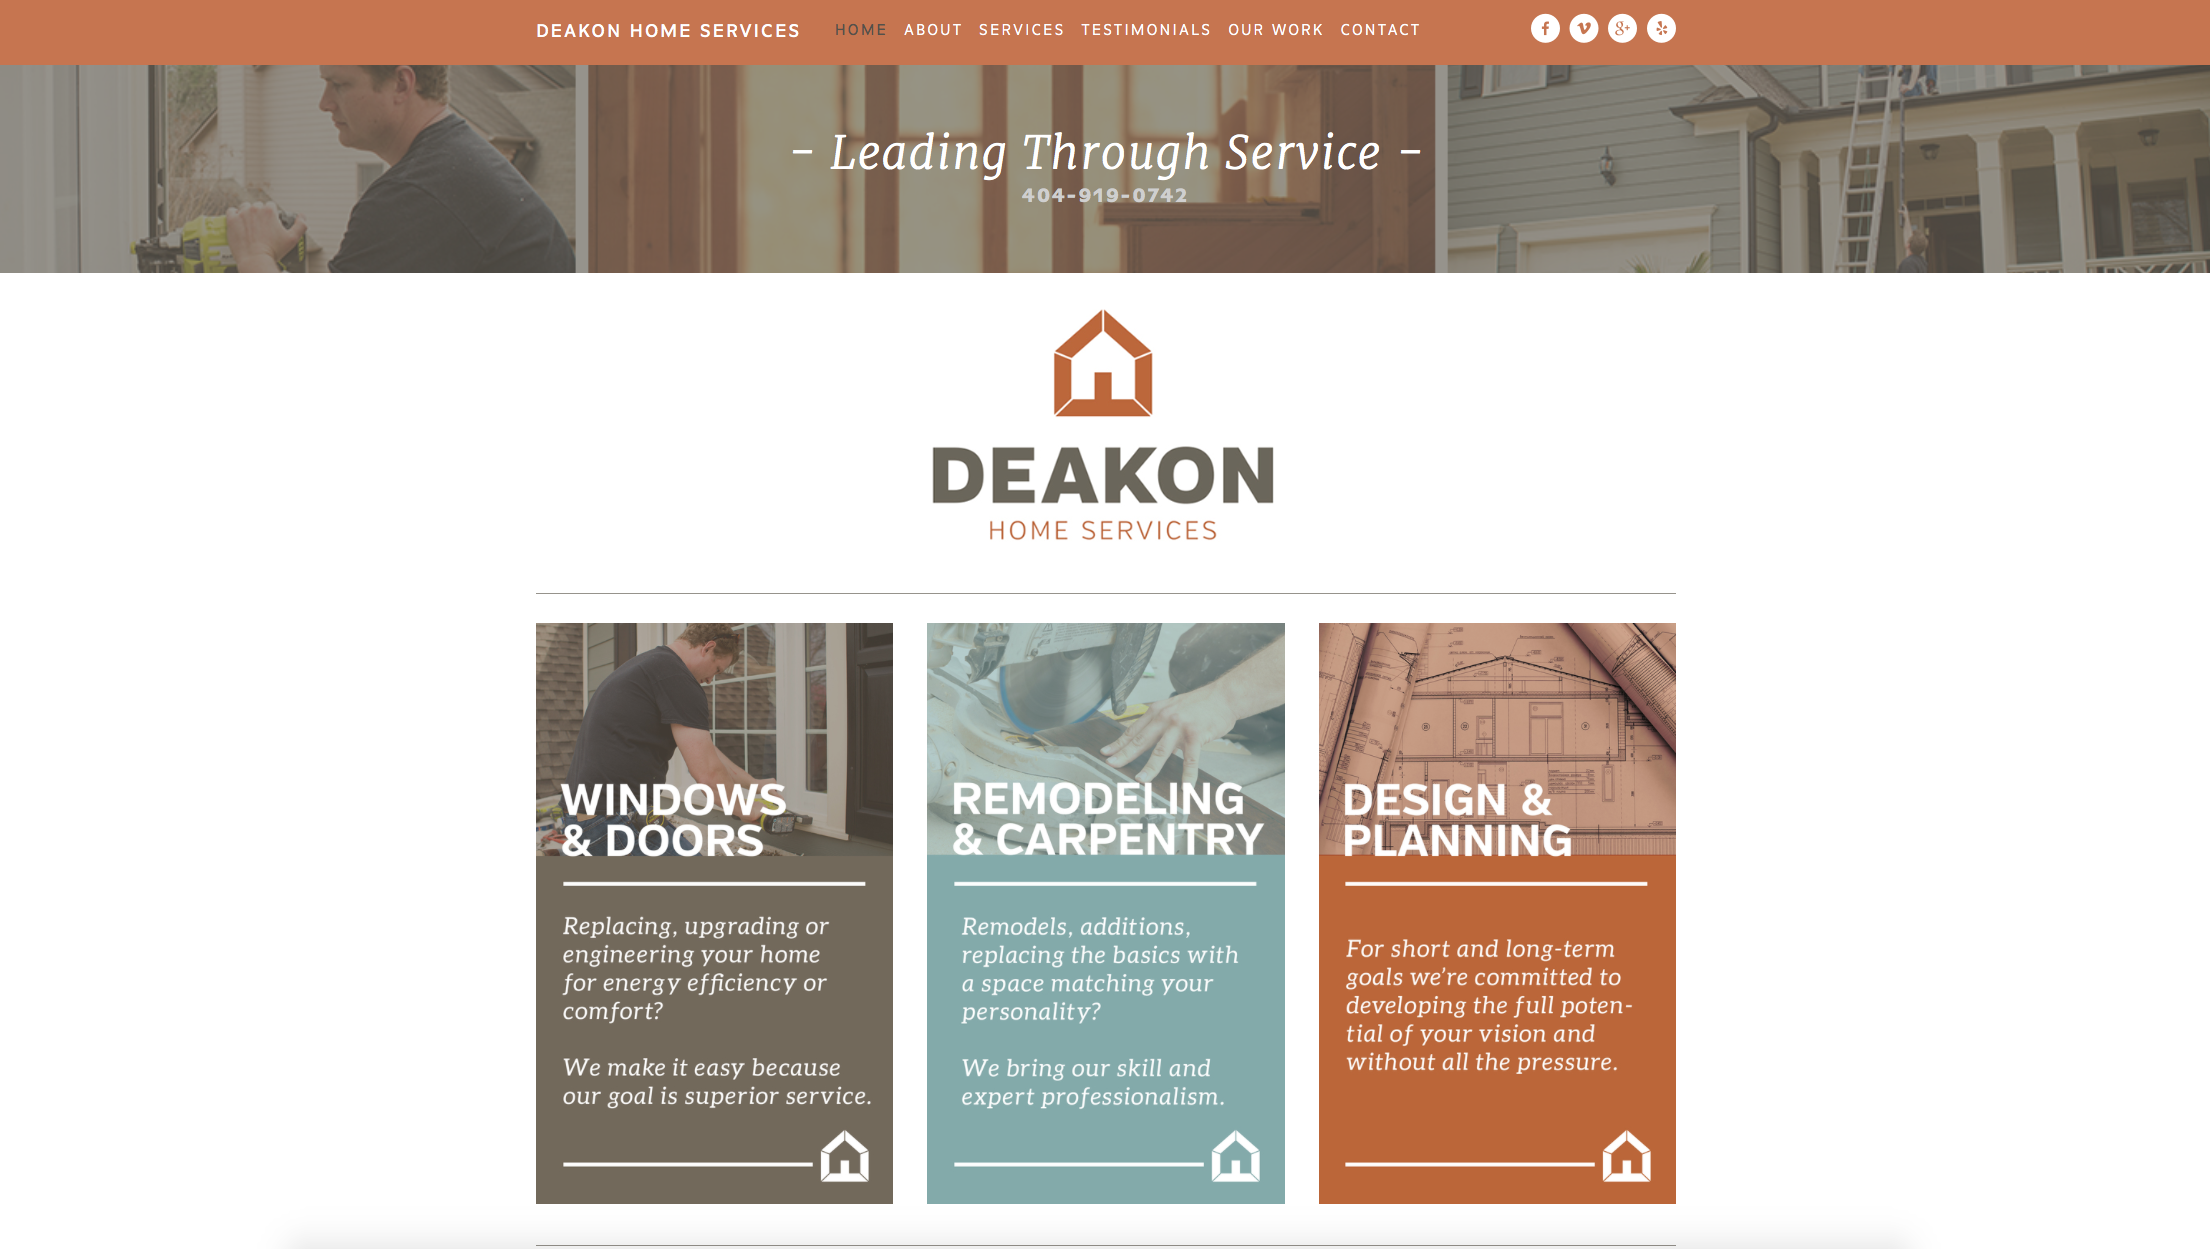 Deakon Home Services.png